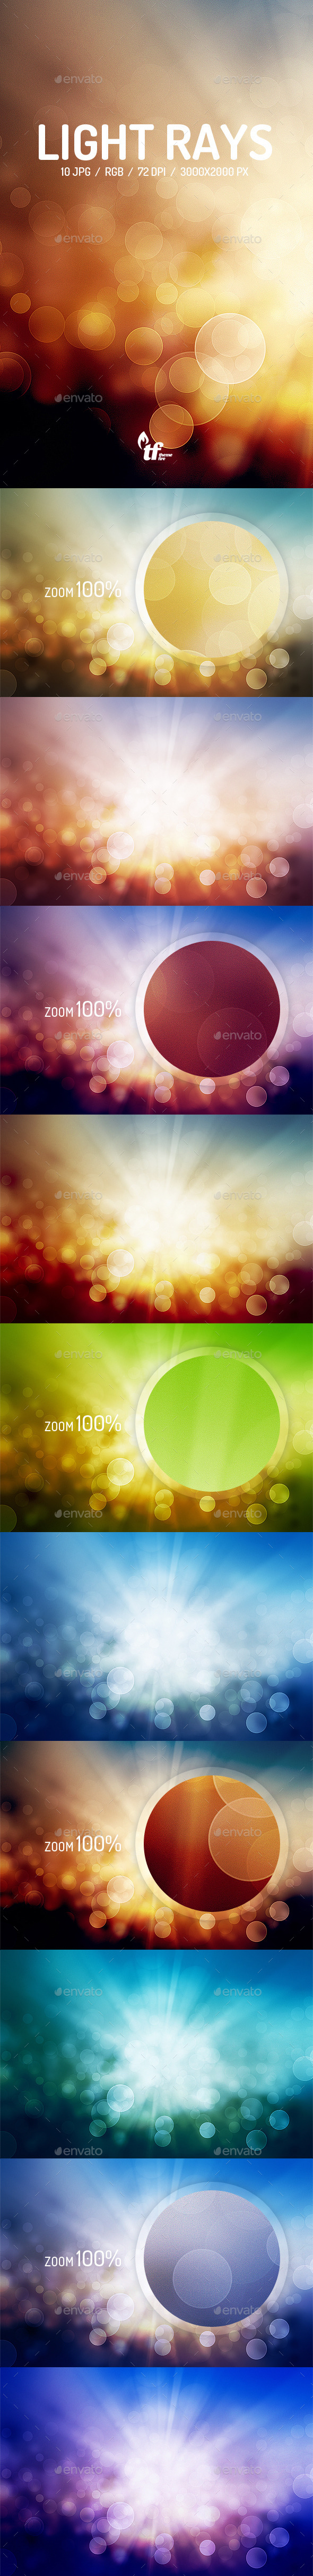 GraphicRiver Light Rays Backgrounds 9854589